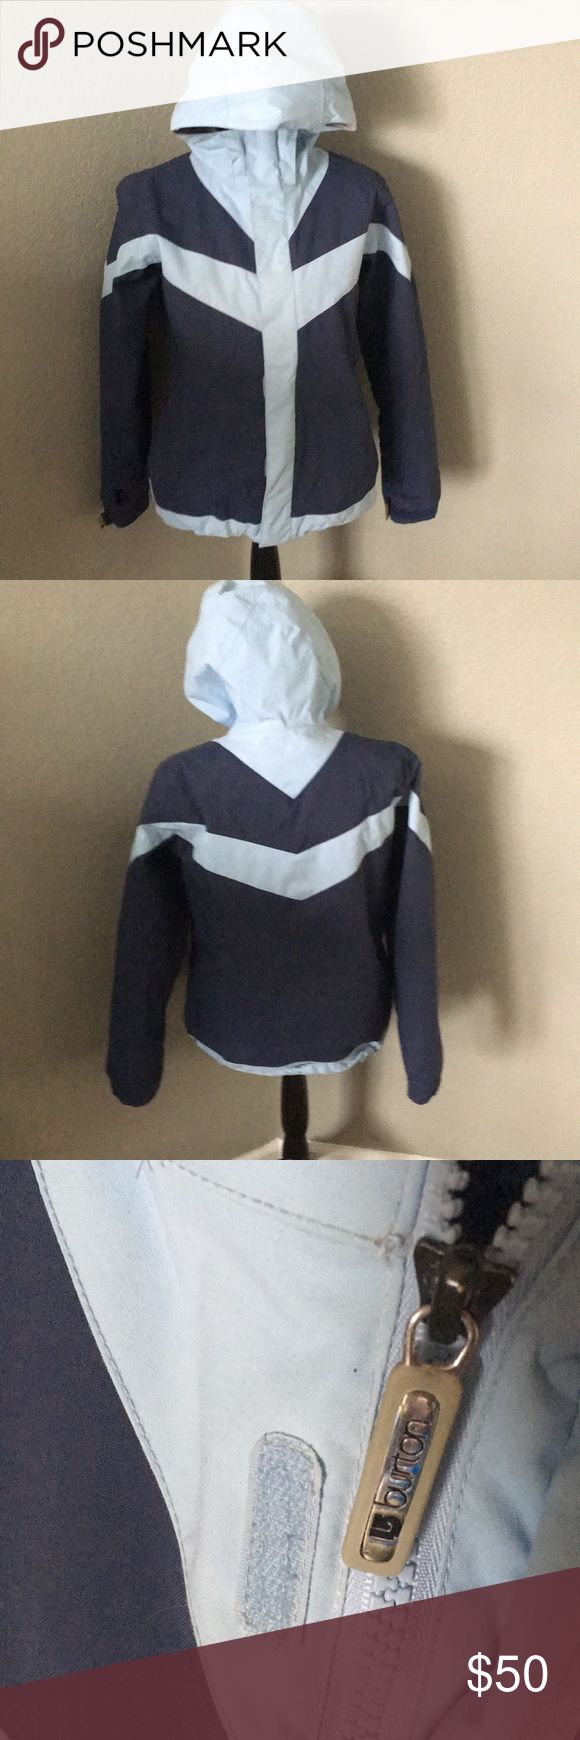 Burton Ski Snowboard Jacket Medium Awesome ski/snowboard jacket in dark and light blue.  Good condition! No holes, rips or stains.  Snap Waist closure to keep upper body warm and dry.  Smoke free home. Burton Jackets & Coats